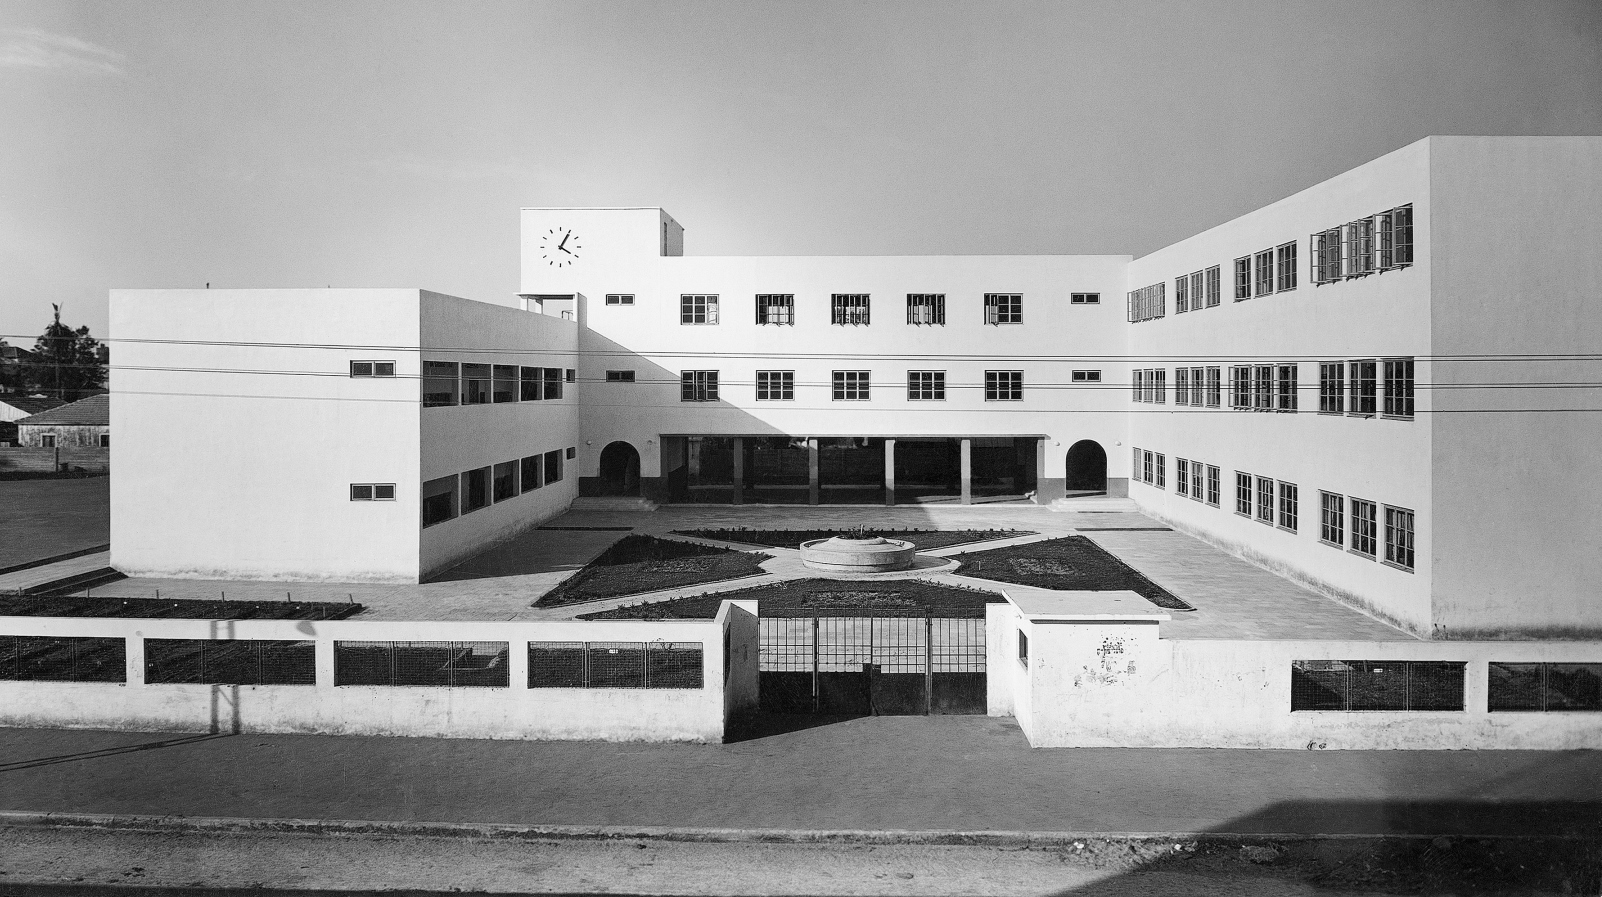 The Bialik School in Tel Aviv was built in the 1930s by Yaacov Shiffman (Ben Sira). Photo from the Kalter Collection